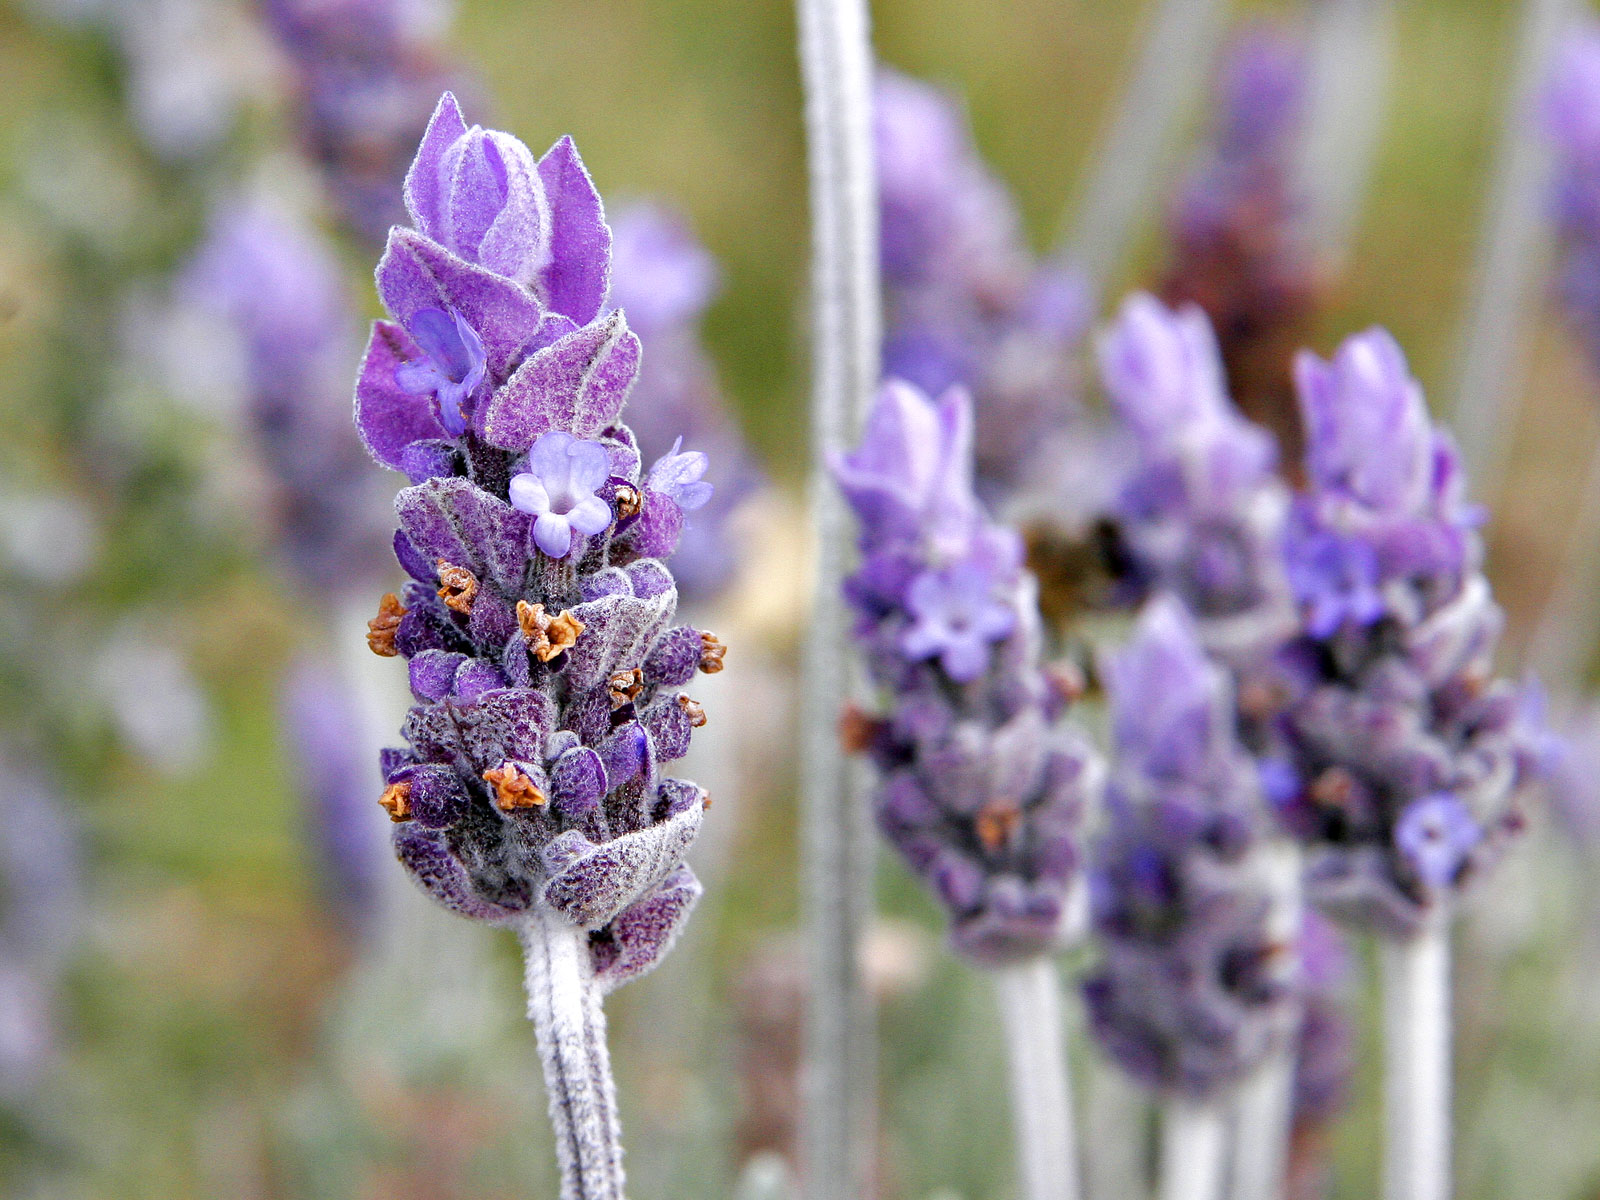 Lavender with its distinctive colouring